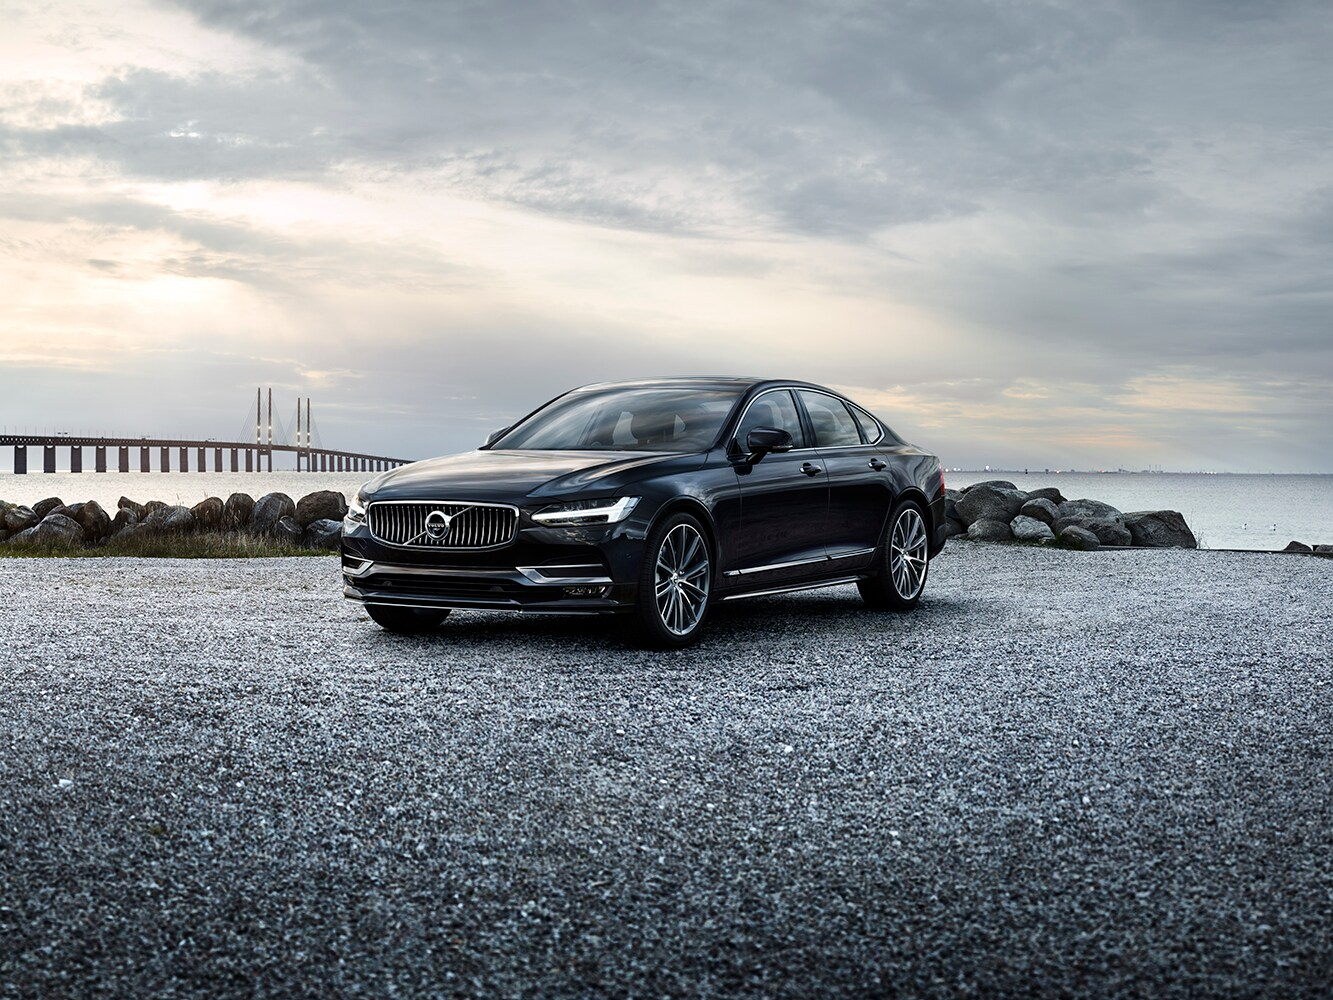 Front side view of the Volvo S90 in black parked on gravel